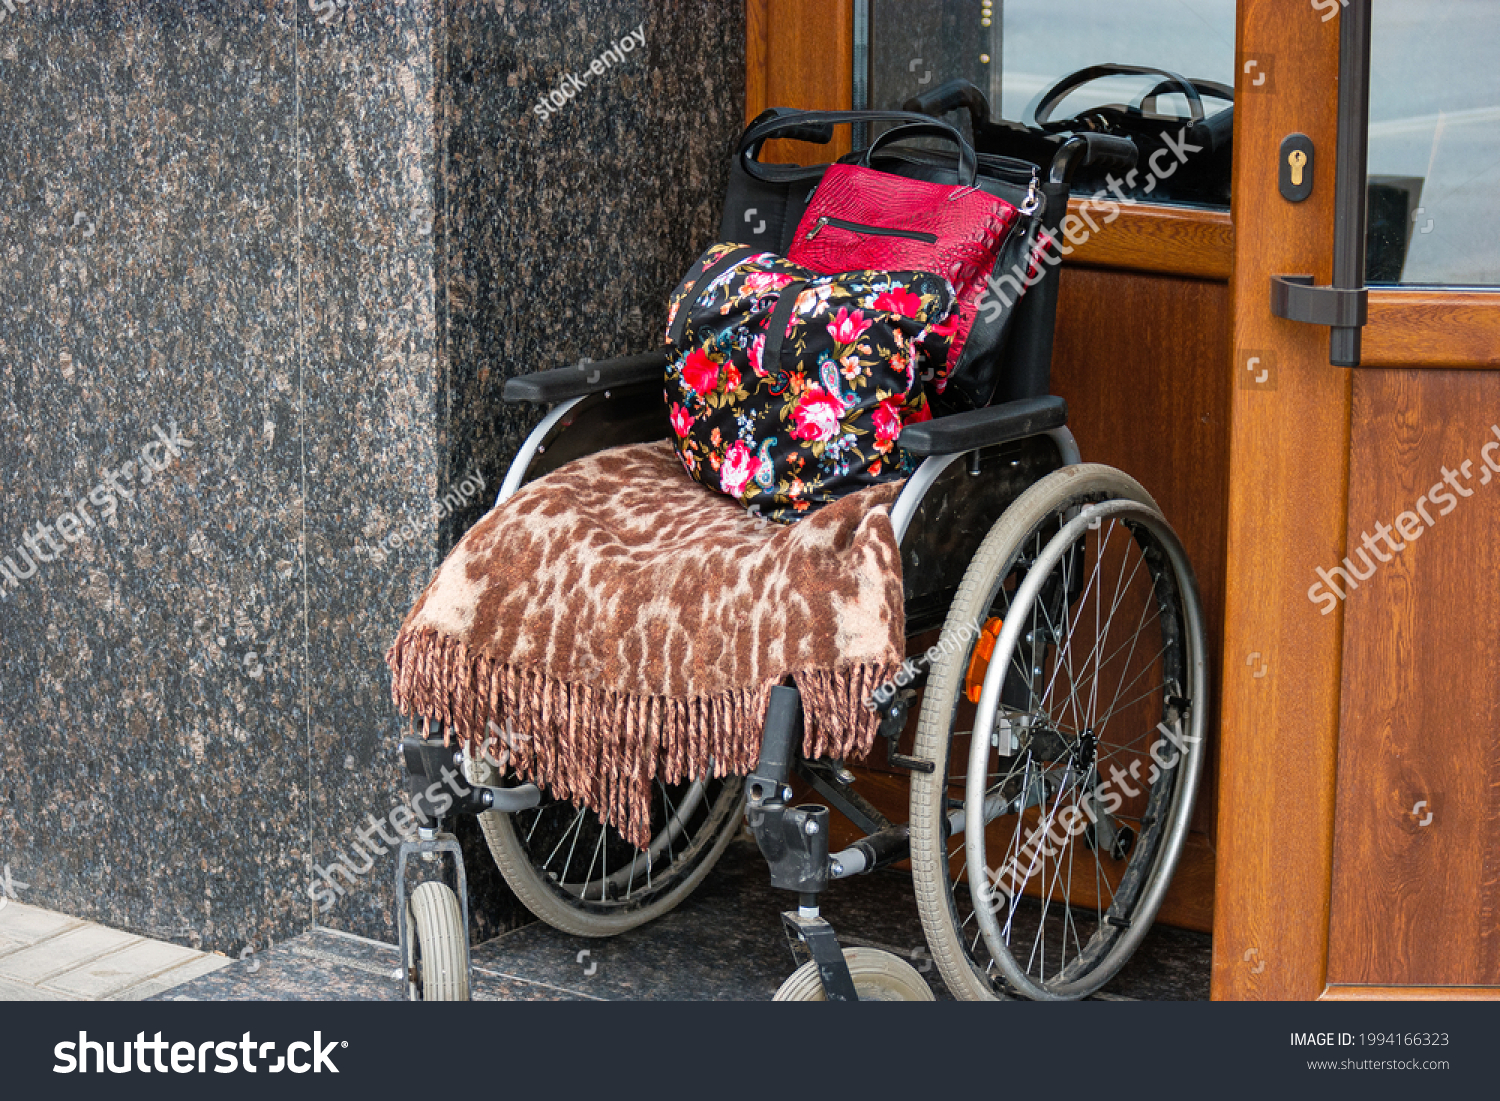 Wheelchair stands at the door of the state office in Russia. Black and red stroller with brown and white textile